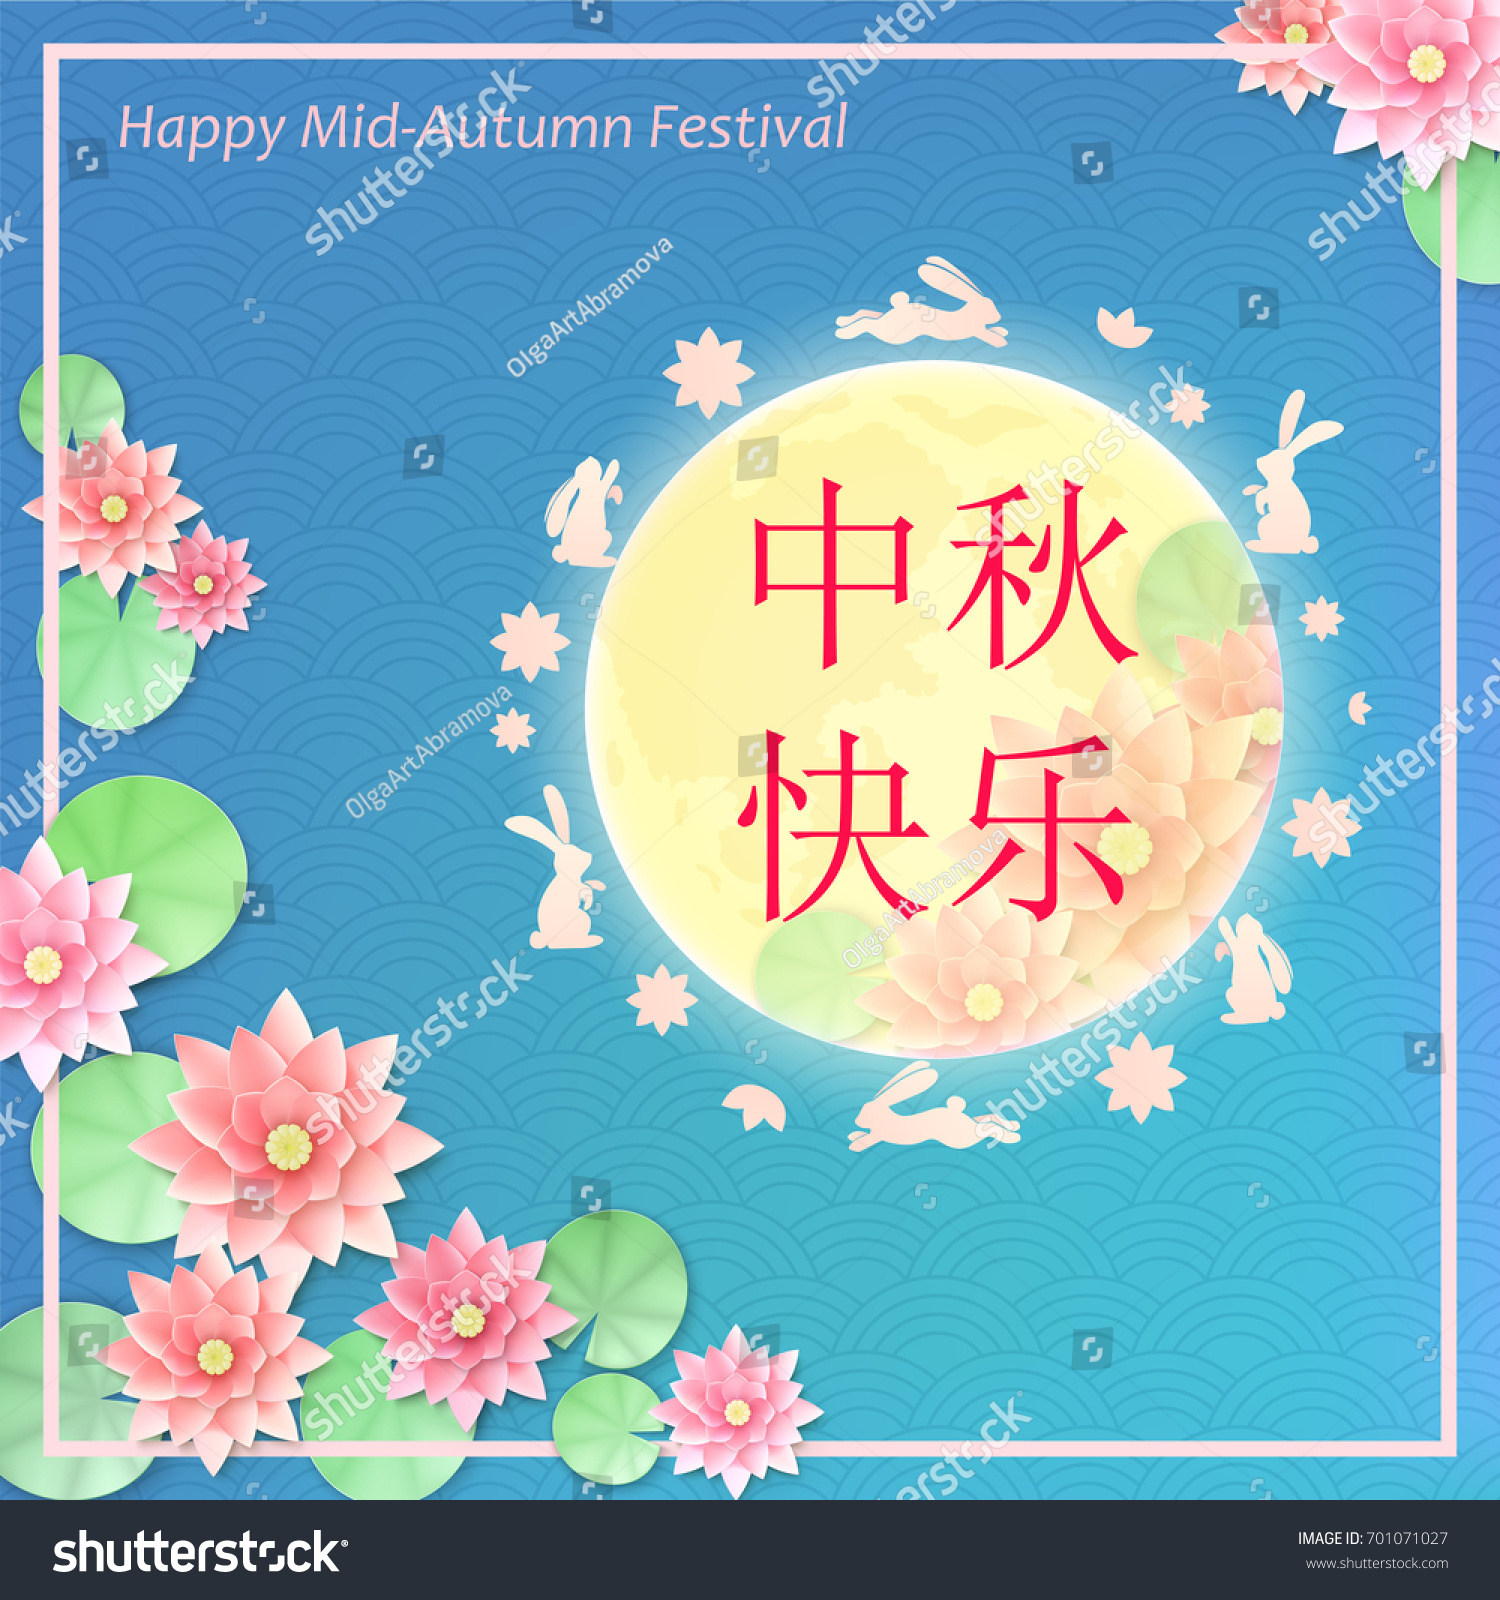 Chinese mid autumn festival greeting card stock vector 701071027 chinese mid autumn festival greeting card with moon rabbit and flowers chinese hieroglyphs are kristyandbryce Choice Image